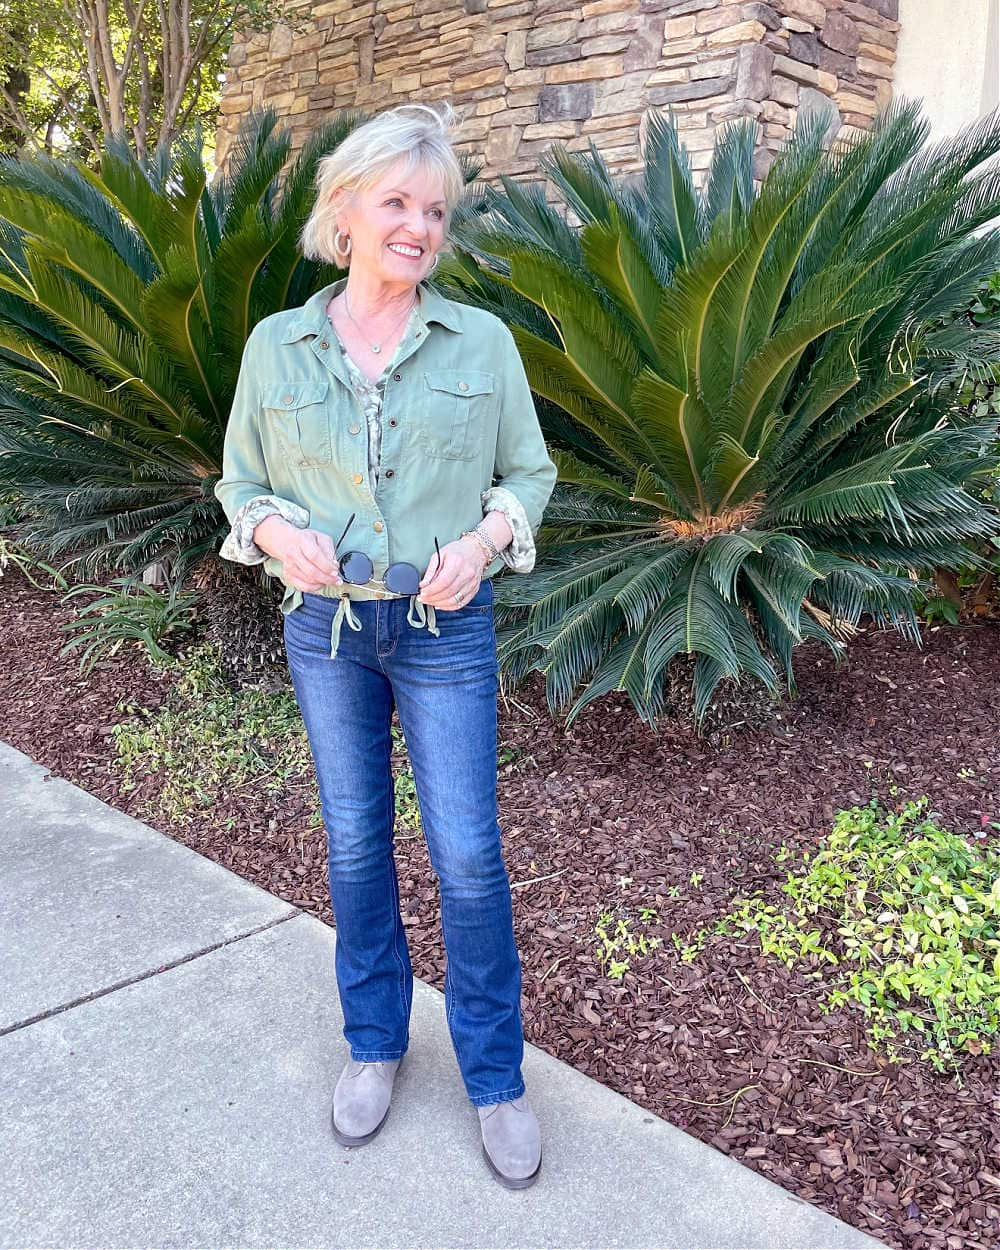 woman walking lightweight fall outfit of green jacket and jeans